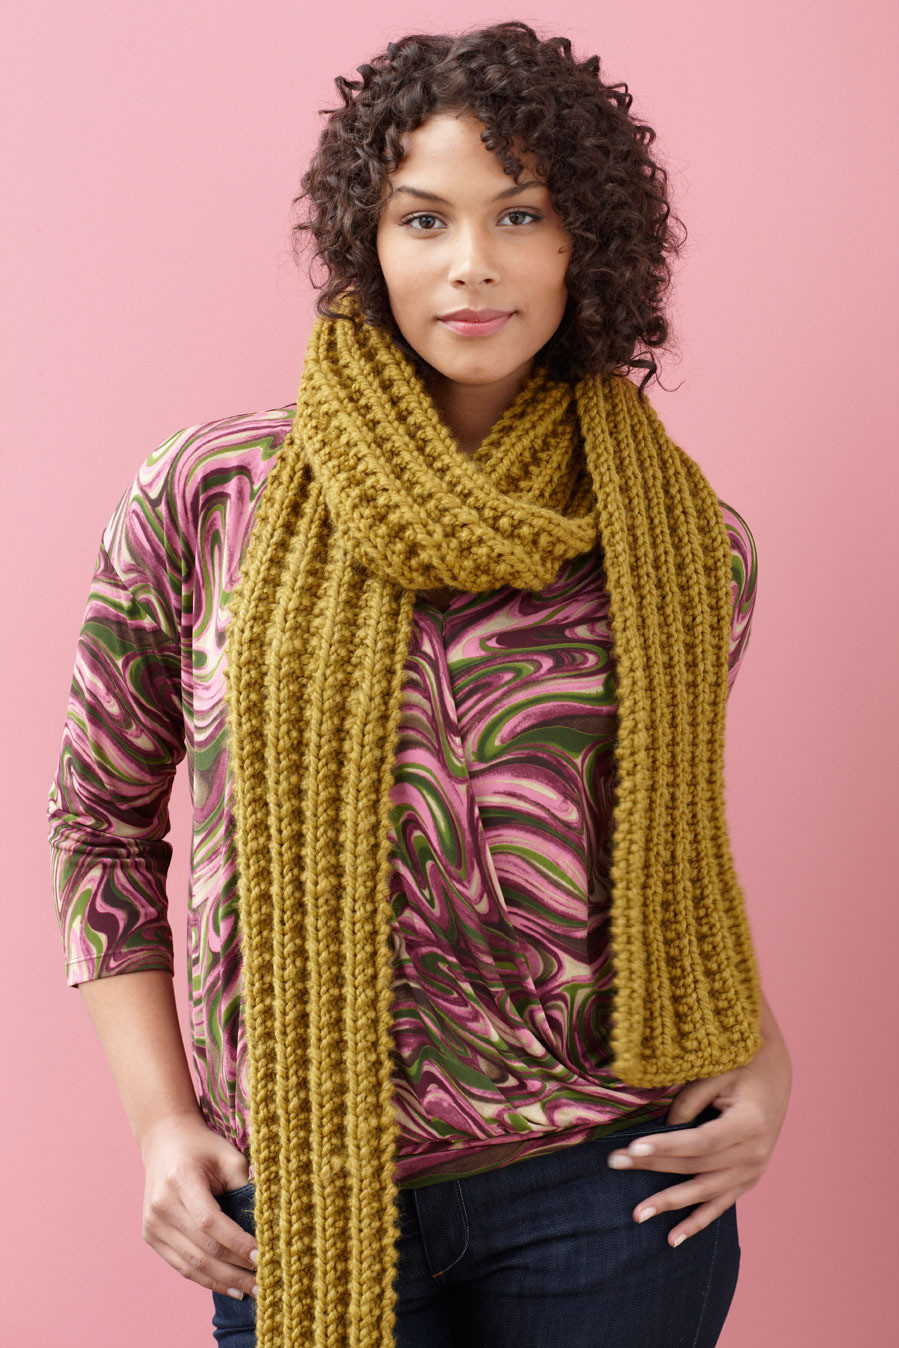 Brisbane Scarf in Lion Brand Wool Ease Thick & Quick